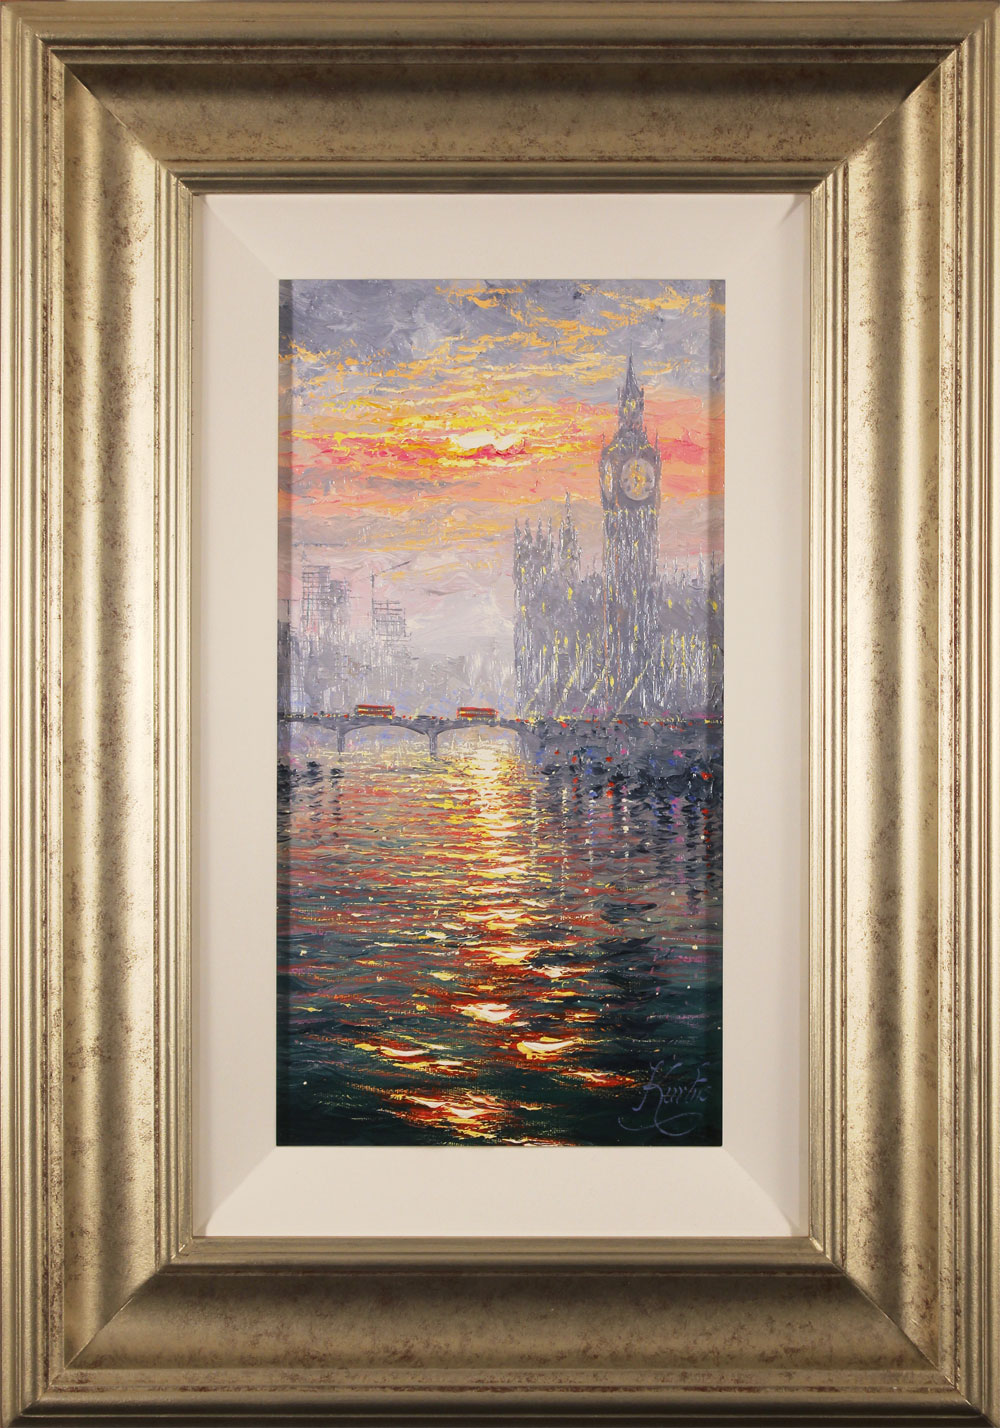 Andrew Grant Kurtis, Original oil painting on canvas, Westminster Haze, click to enlarge